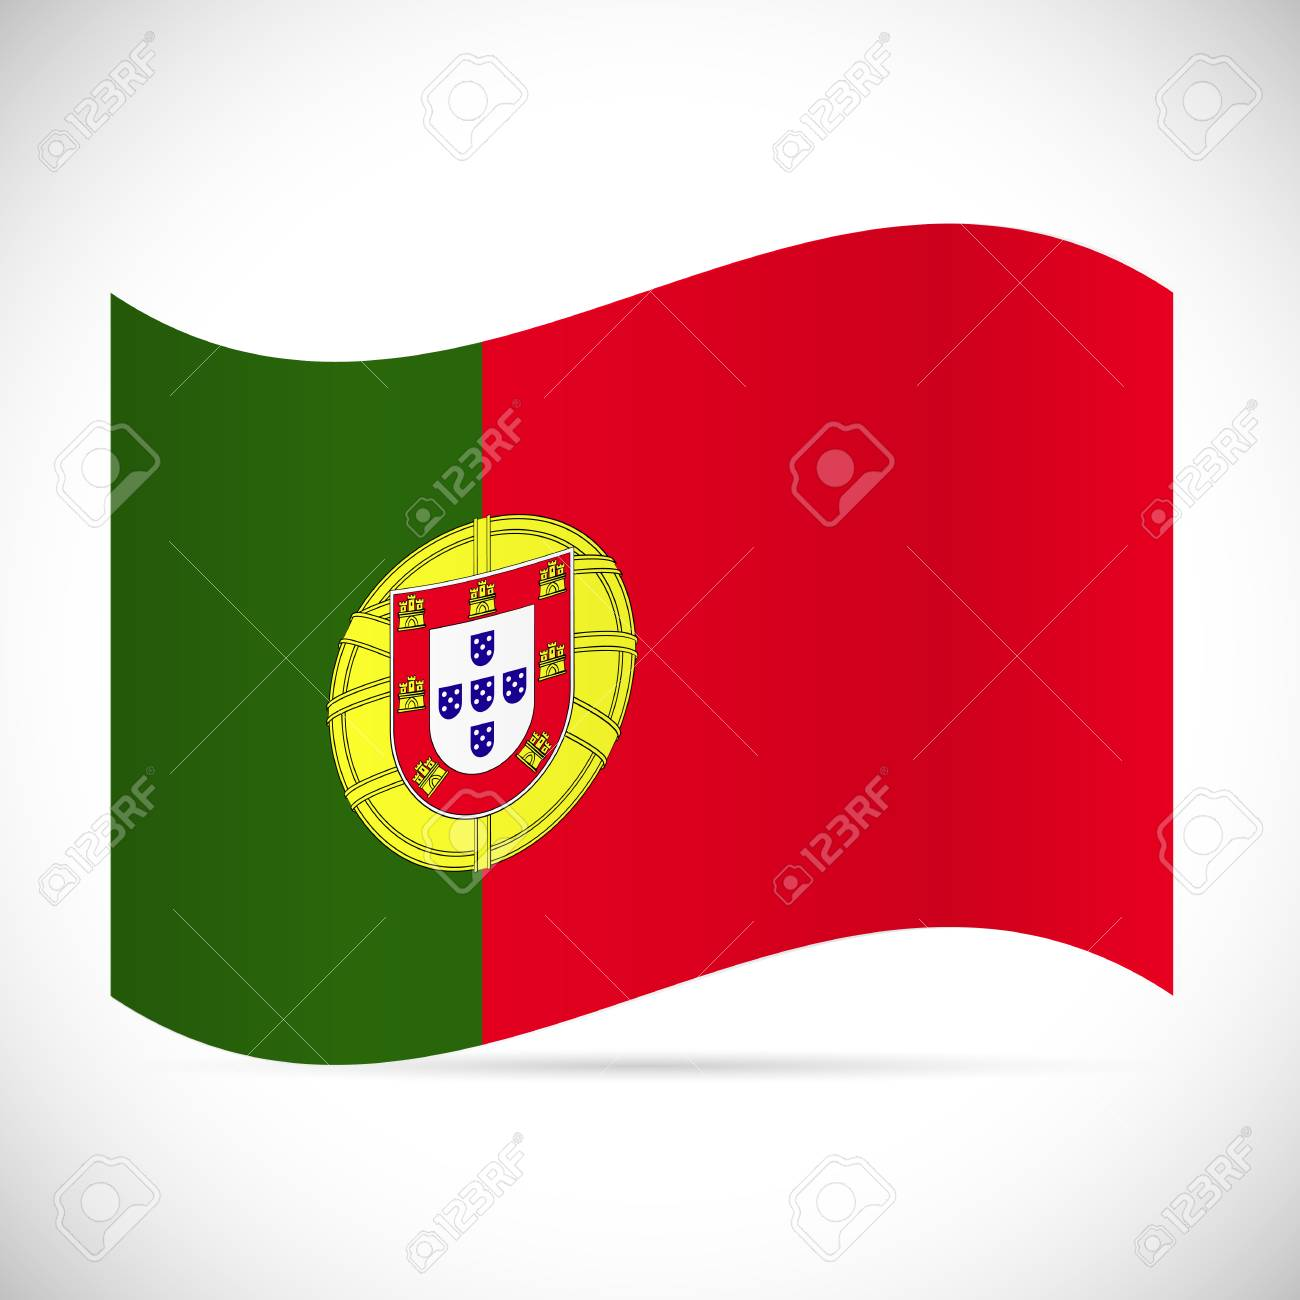 Illustration of the flag of Portugal isolated on a white background. - 97016259